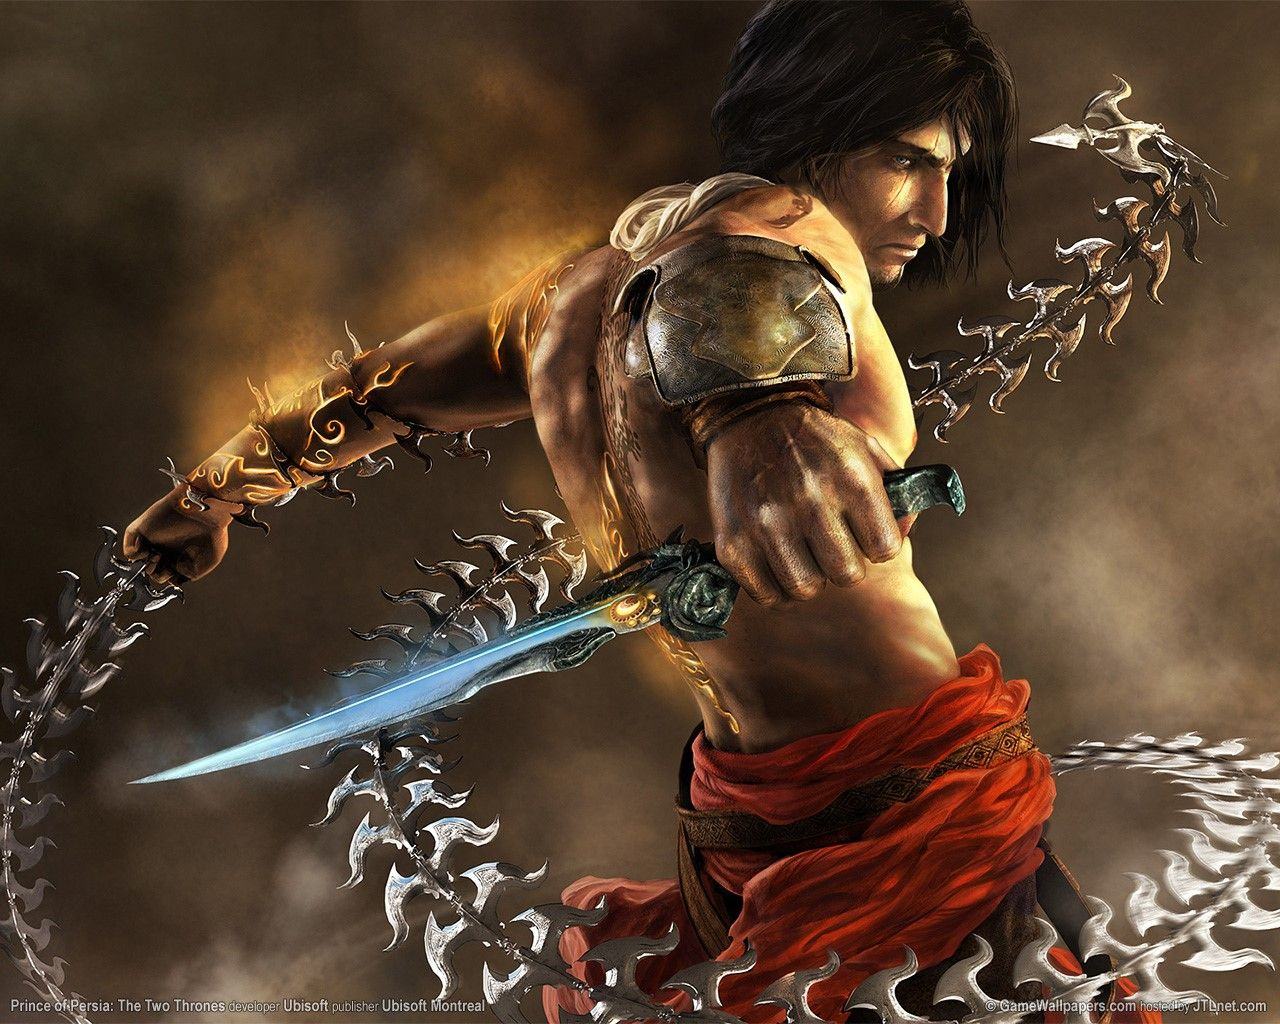 Prince Of Persia Prince Of Persia Persia Warrior Within